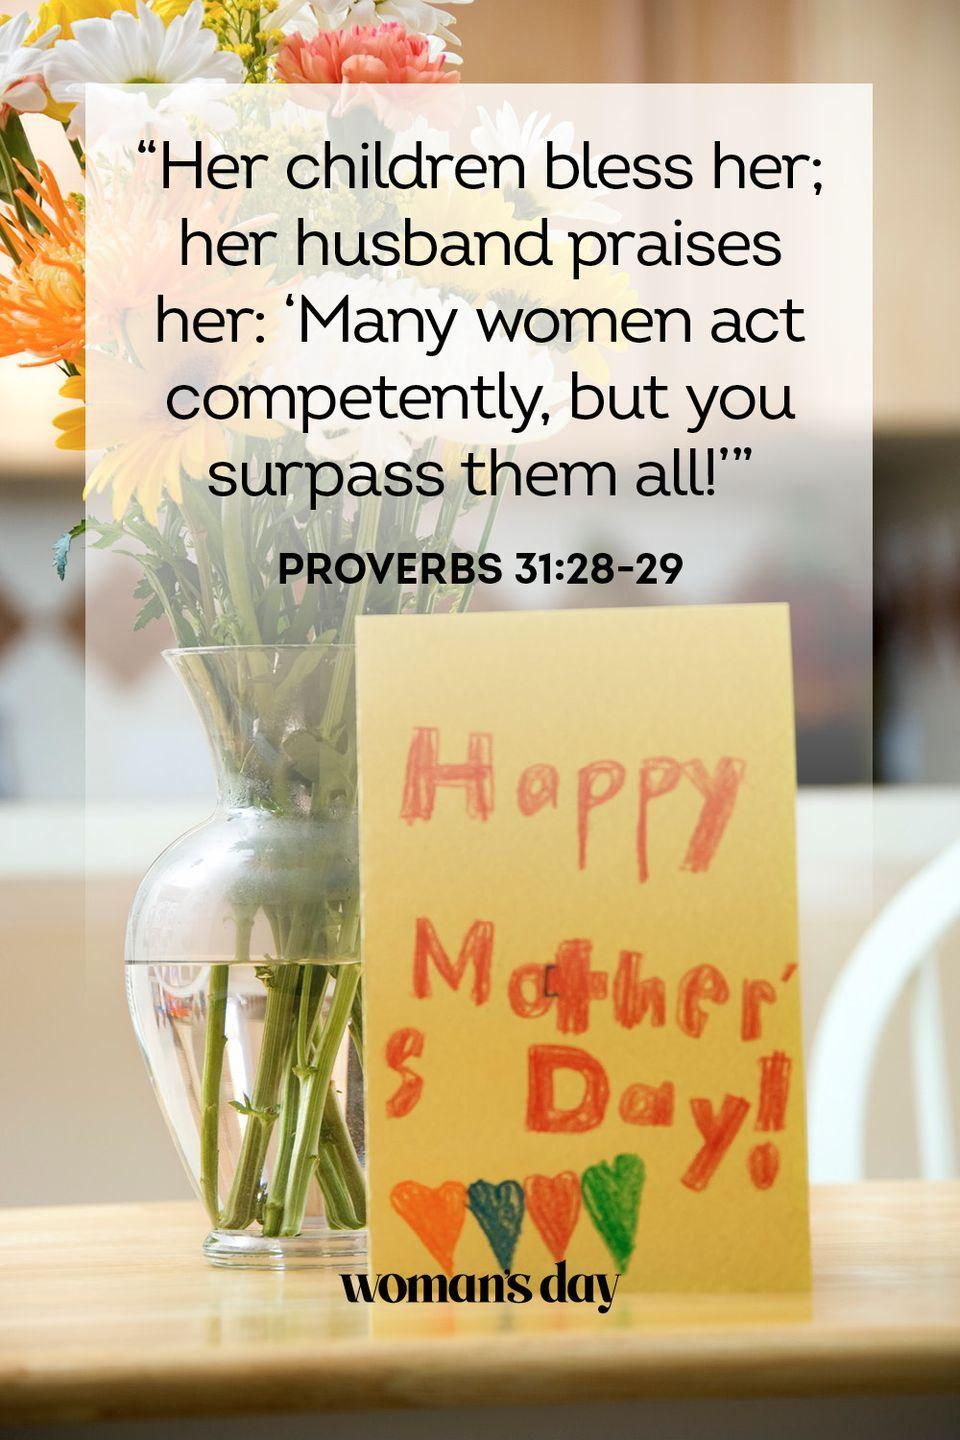 "<p>""Her children bless her; her husband praises her: 'Many women act competently, but you surpass them all!'""</p><p><strong>The Good News: </strong>A mother who serves her family well will earn the eternal gratitude of her children and spouse. </p>"